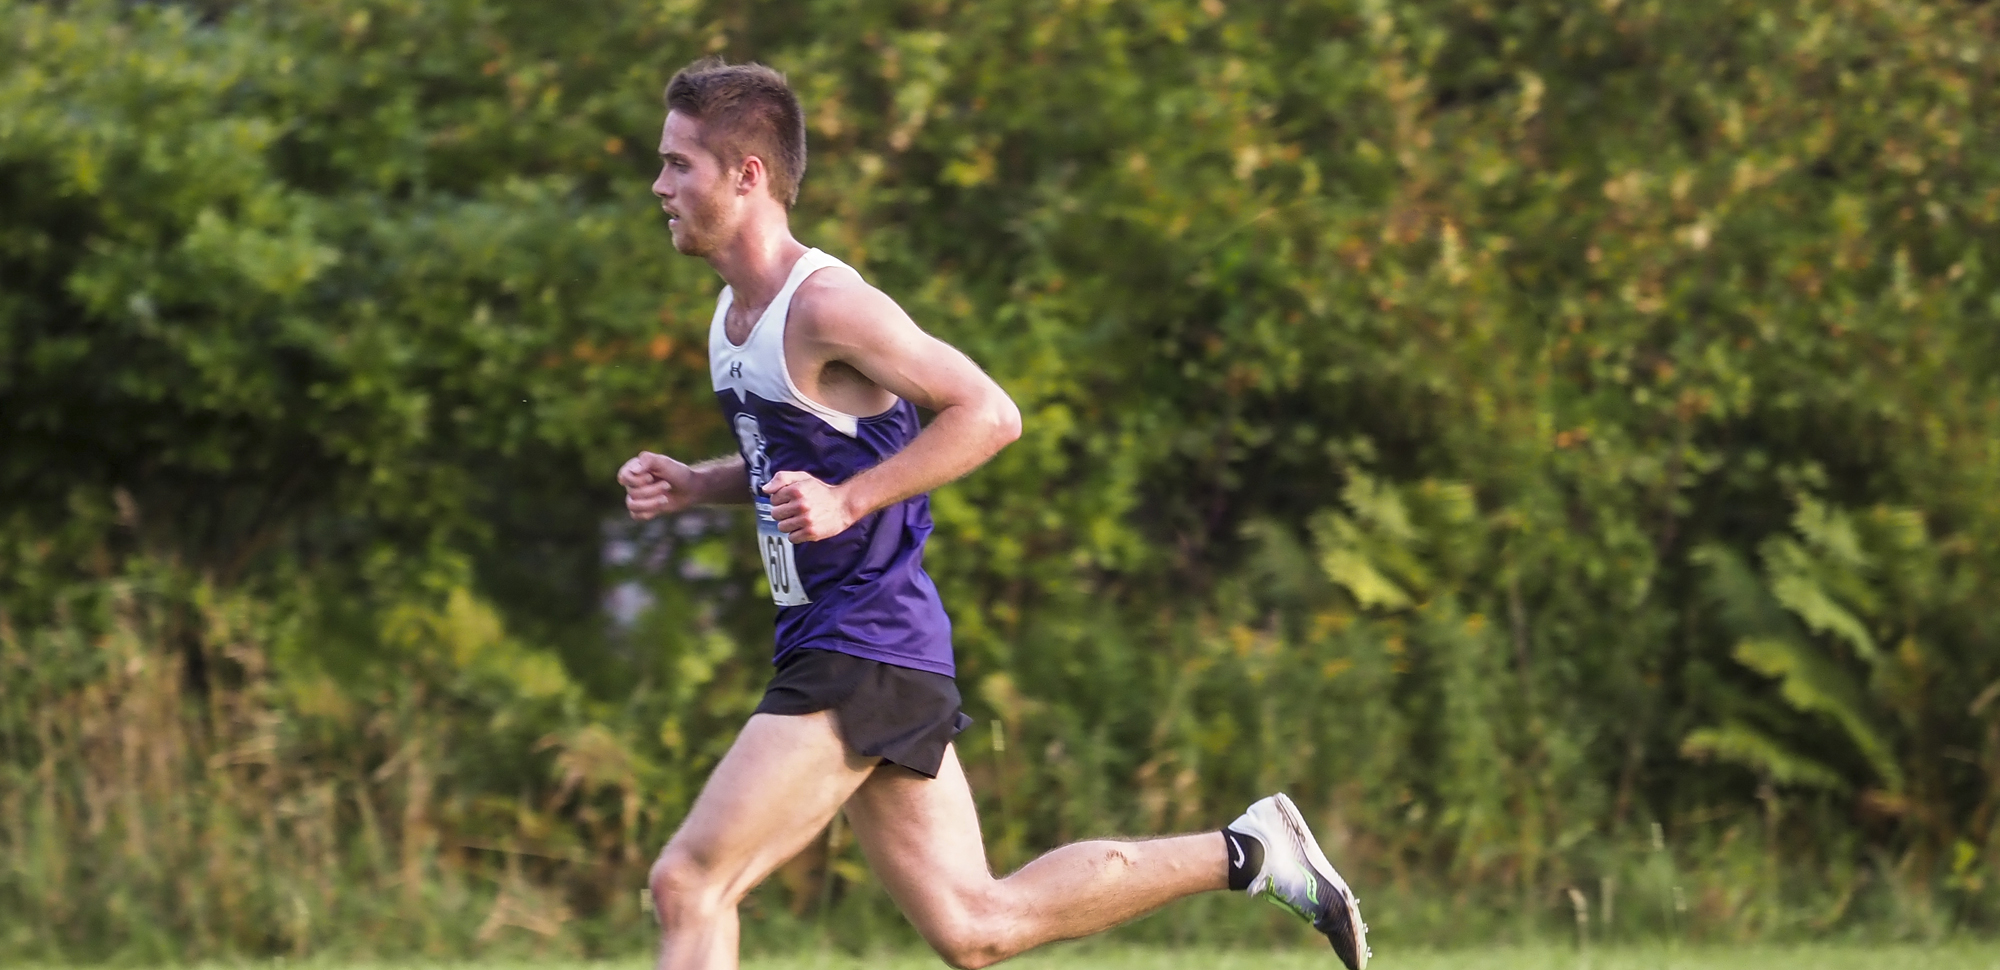 Senior Zach Gutekunst was the top finisher for the Royals in 41st place at Saturday's NCAA Division III Mideast Regional.